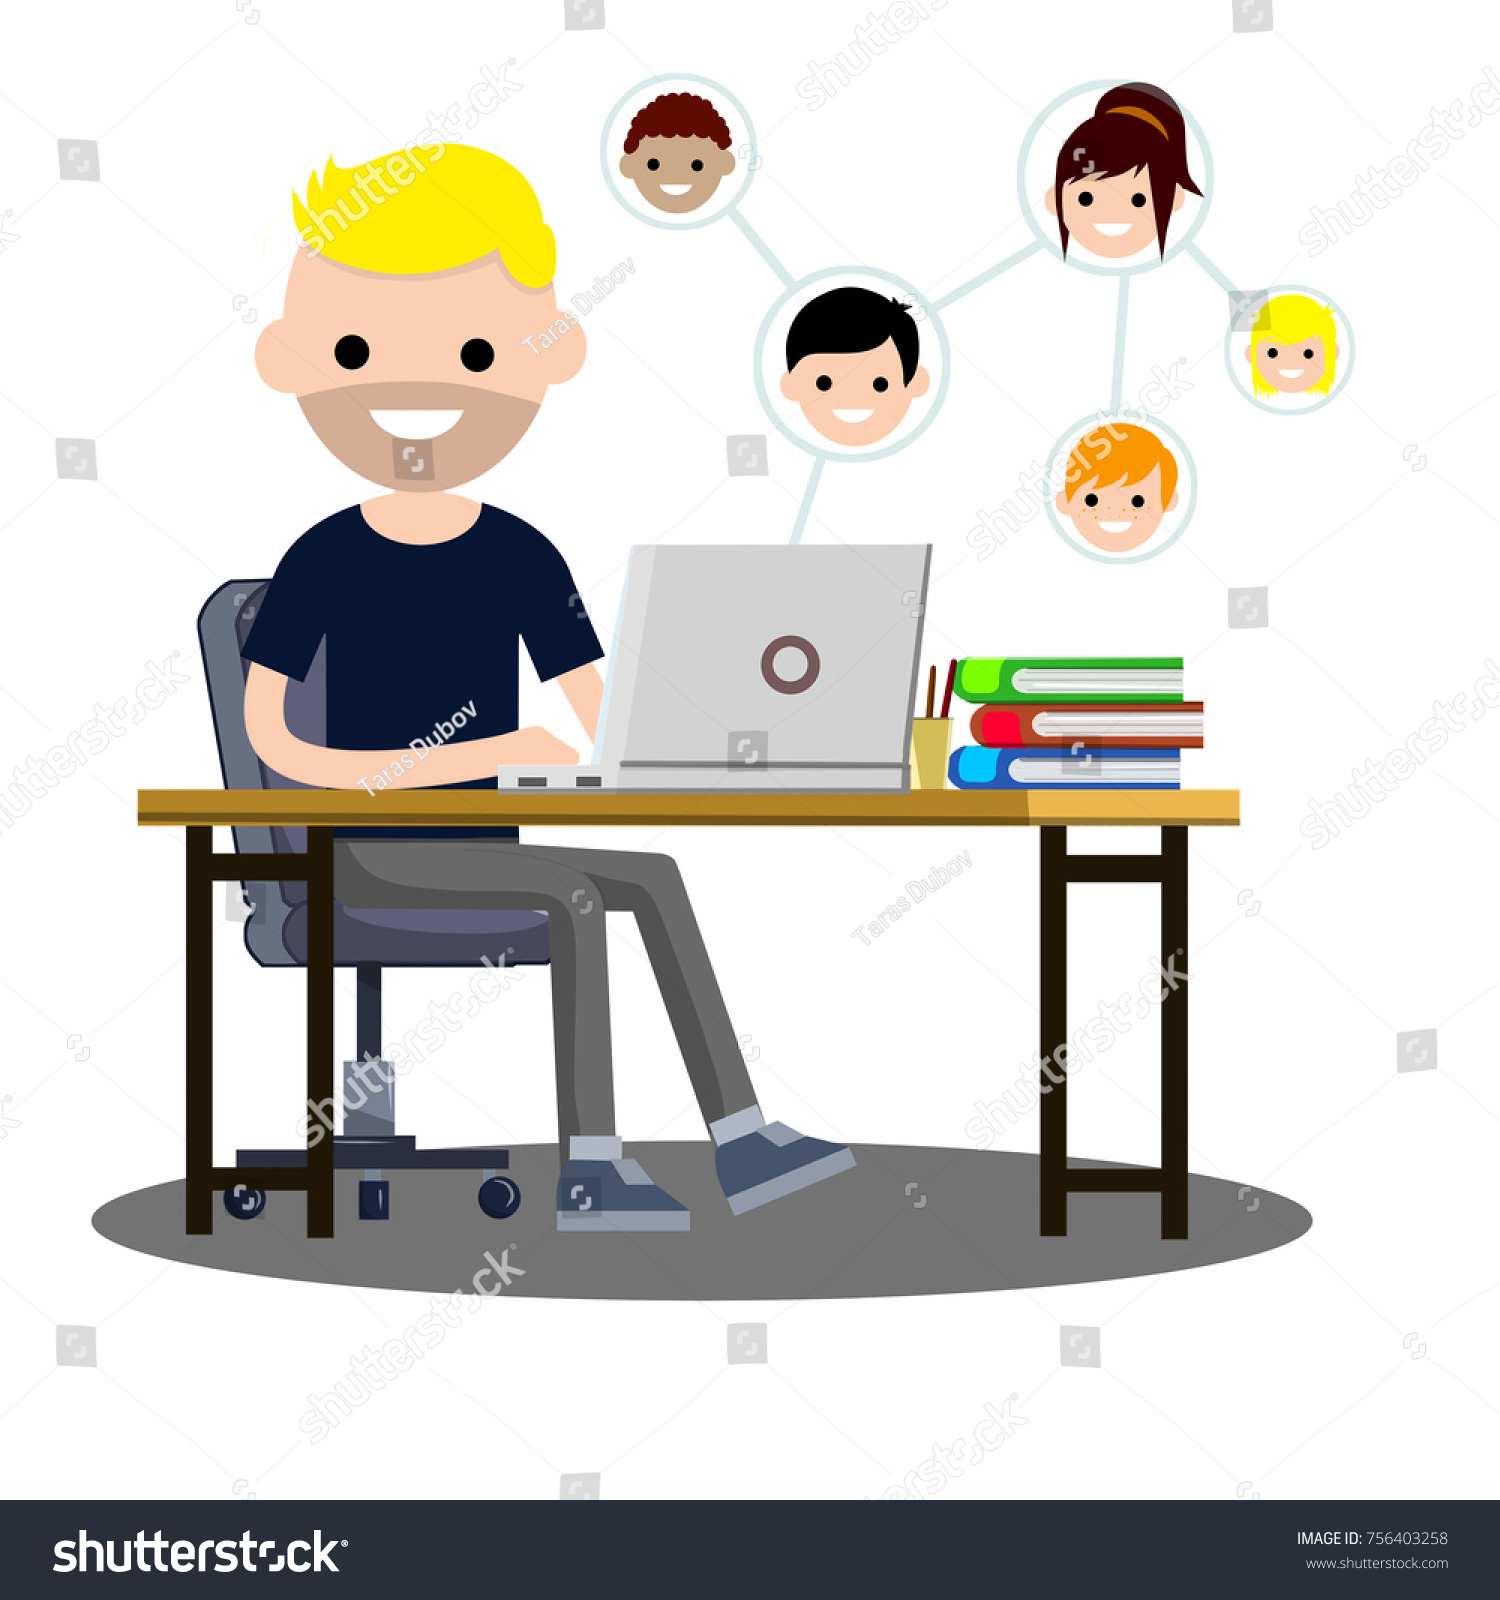 Guy Student Dark Clothes Sitting Stock Vector